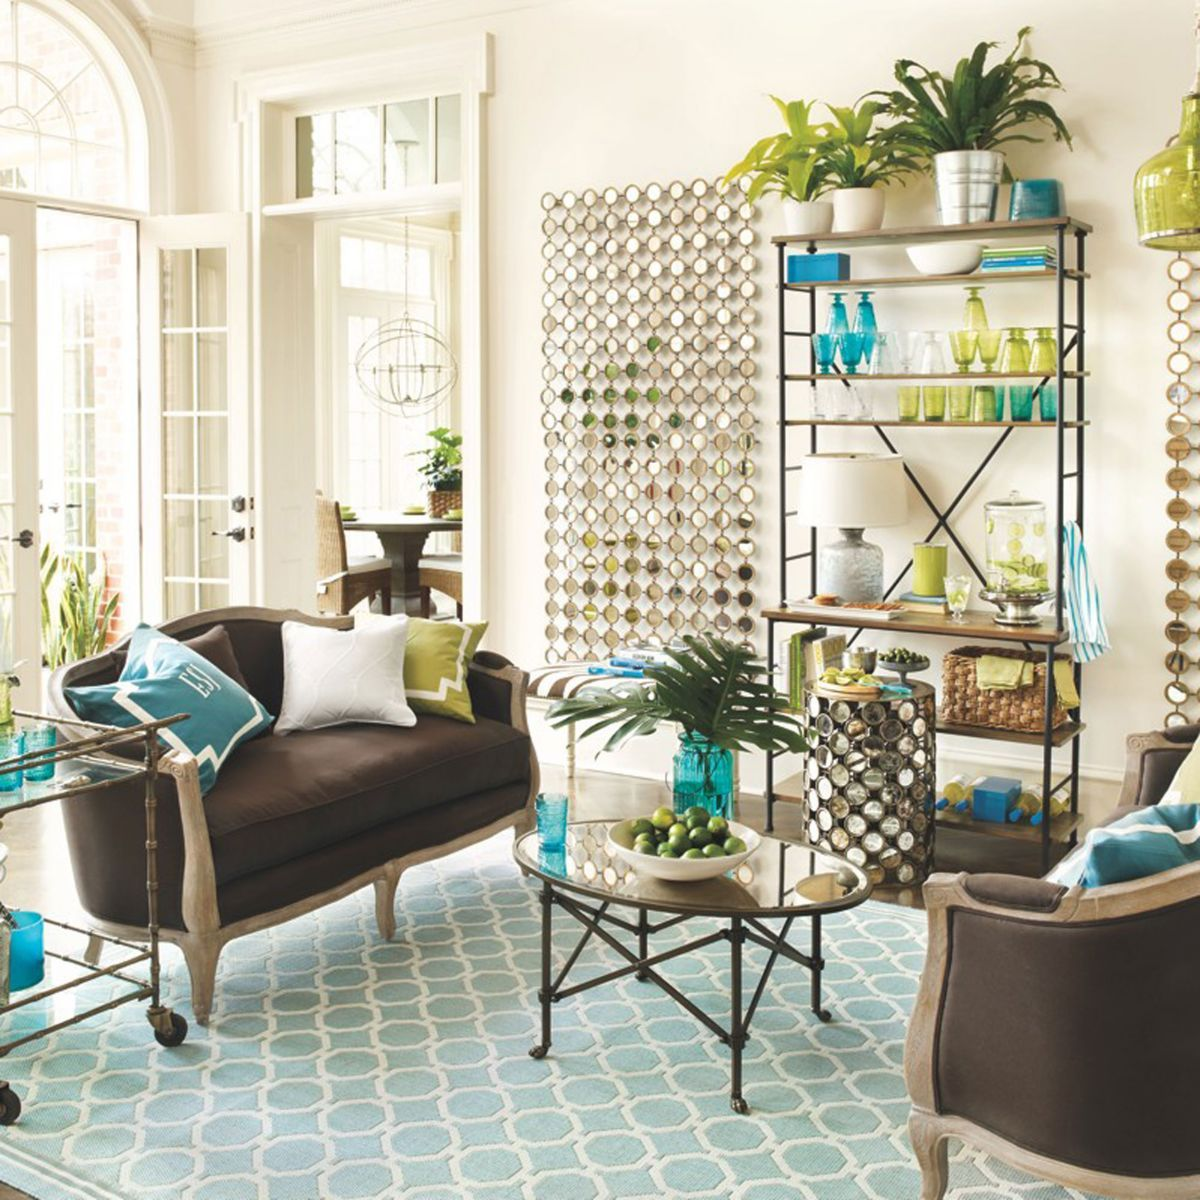 Seriously in love with the turquoise rug! | Home Inspiration ...